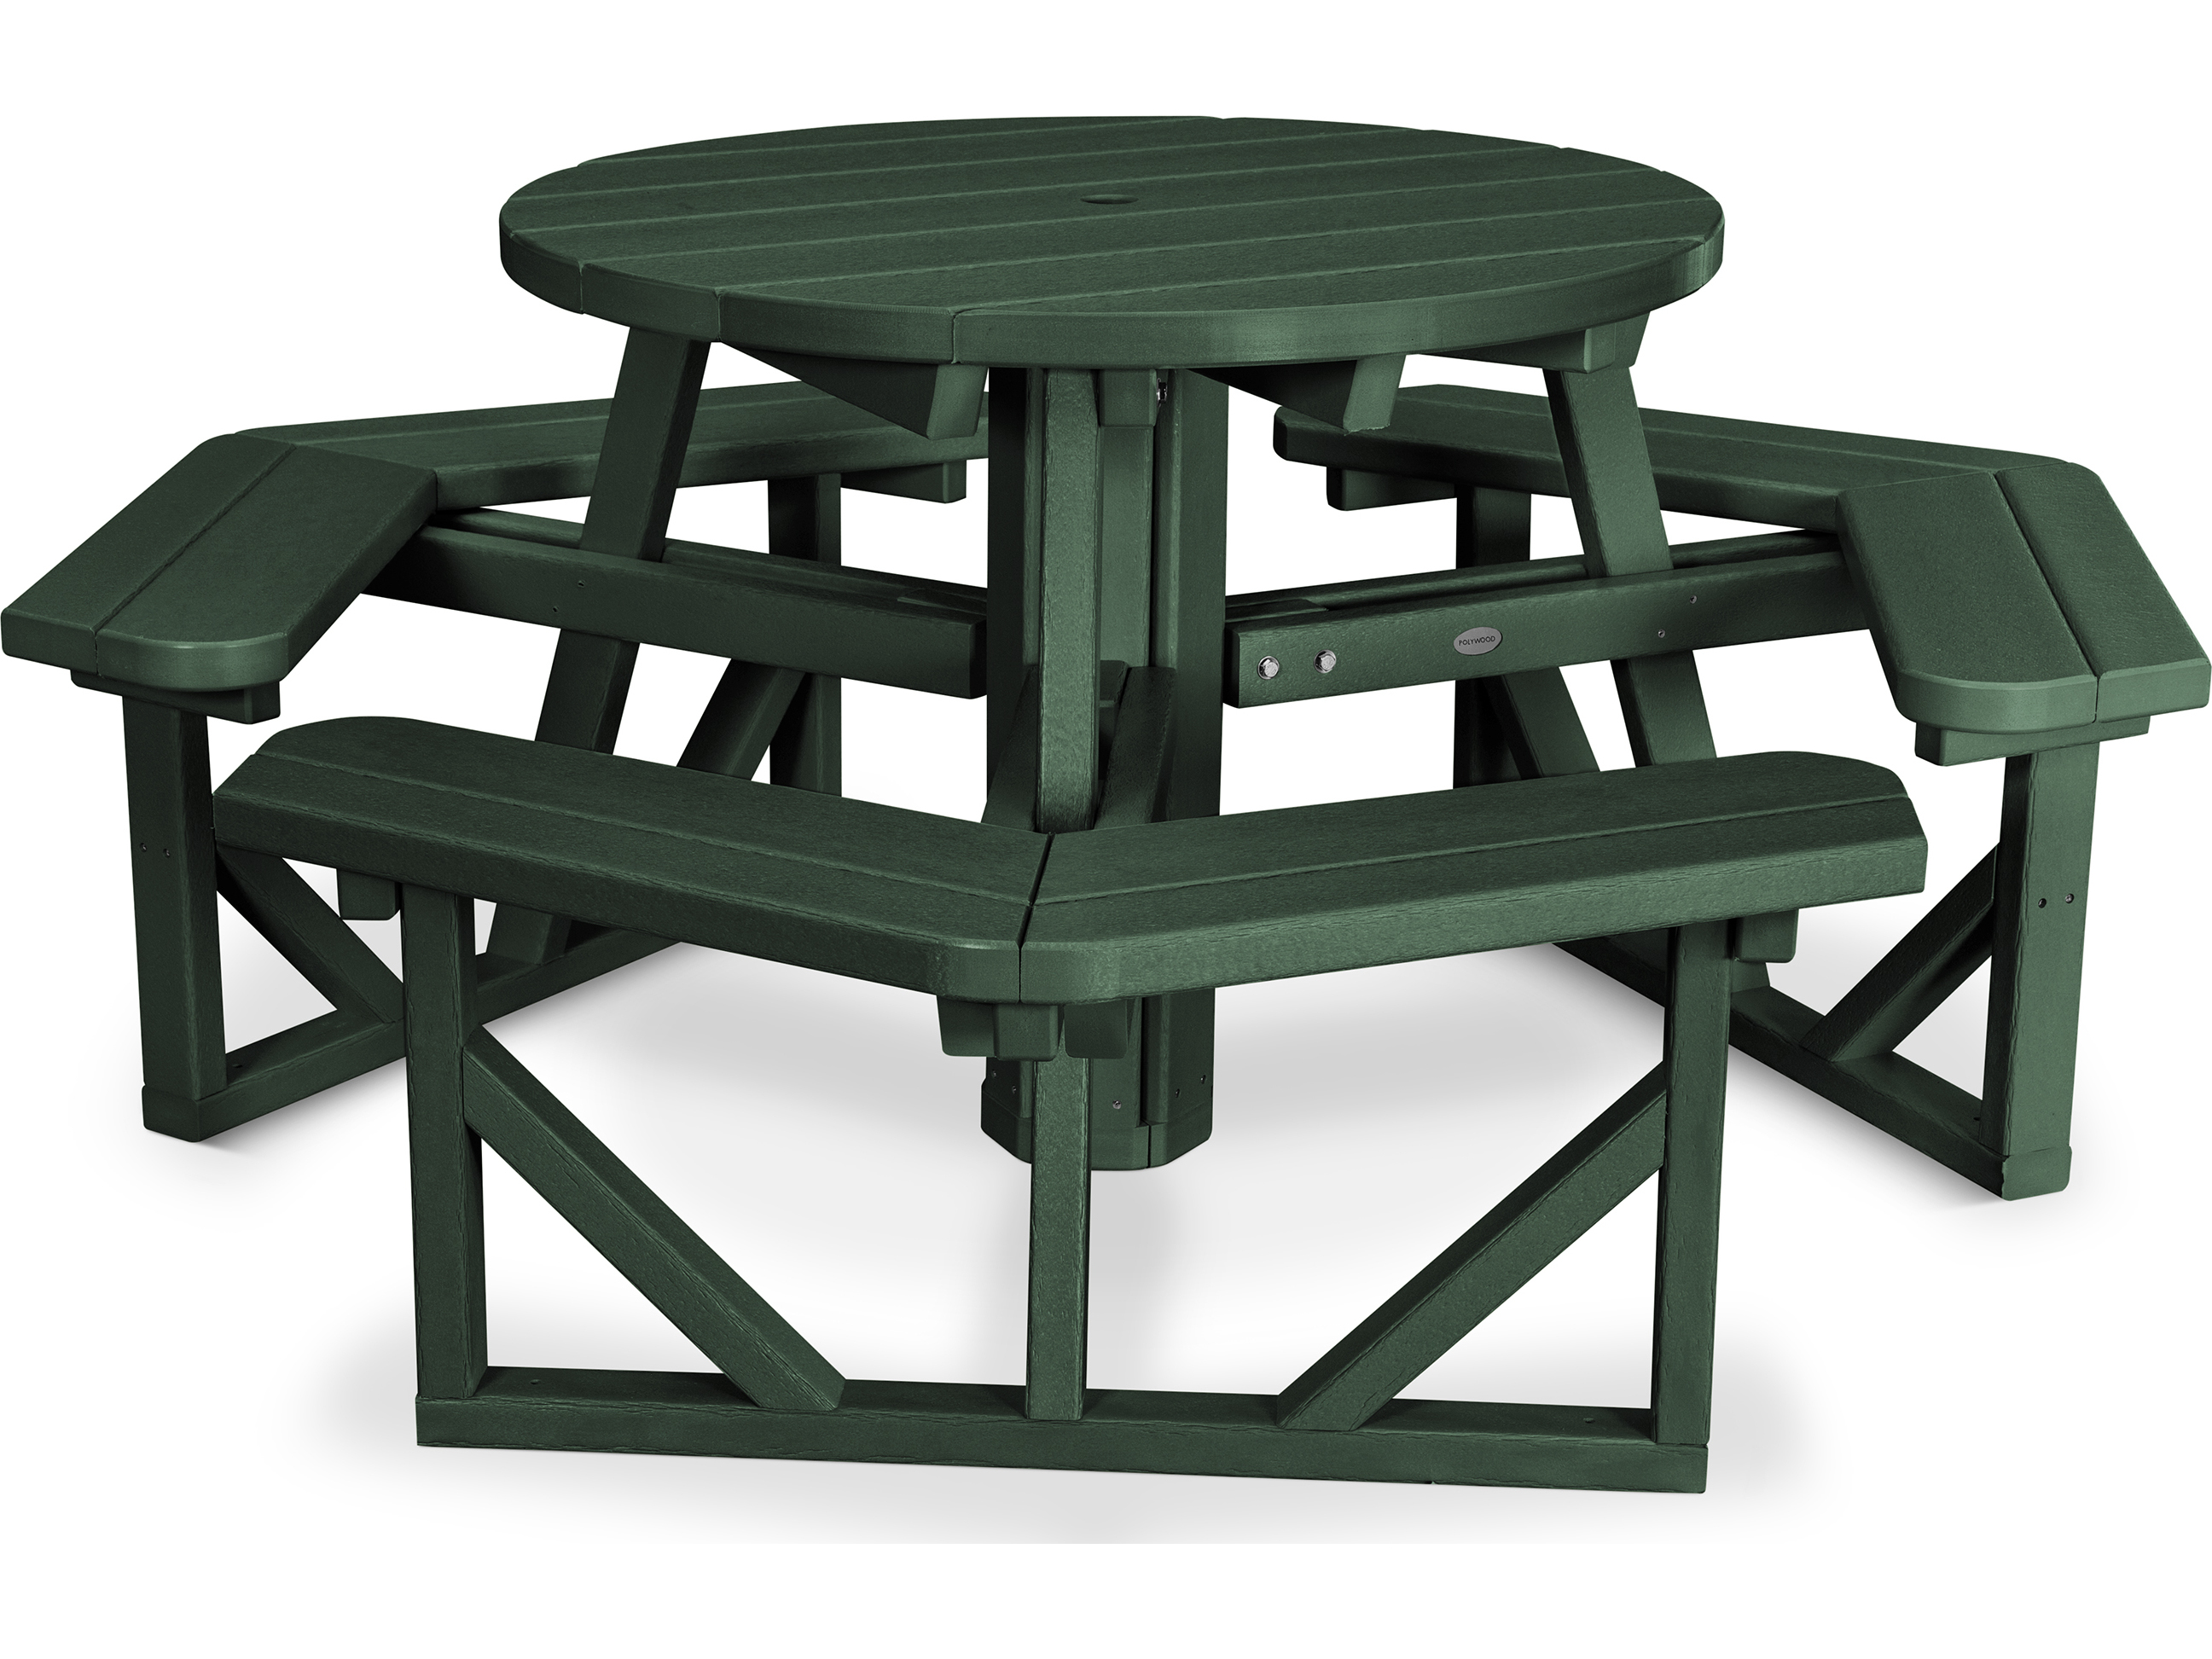 Polywoodr Park Recycled Plastic 36 Round Picnic Table Pwph36